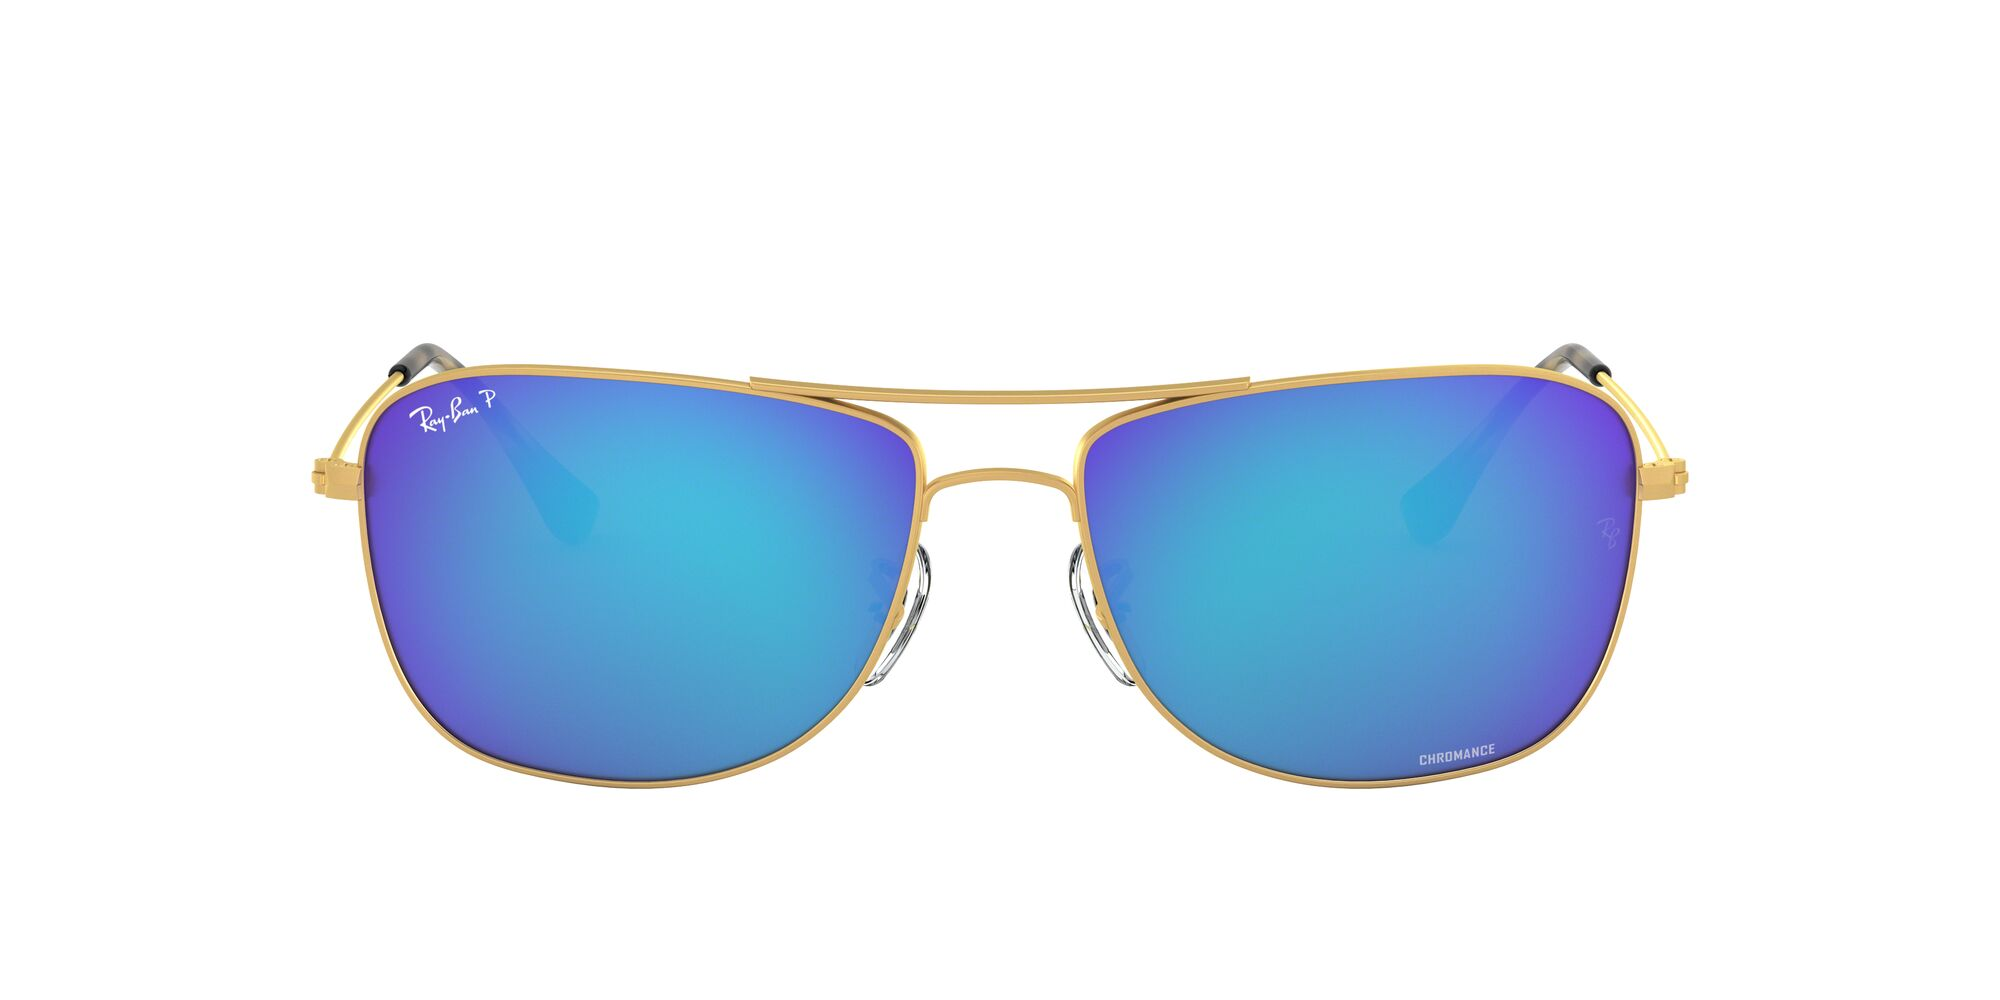 Front Ray-Ban Ray-Ban RB3543 112/A1 59/16 Goud/Blauw